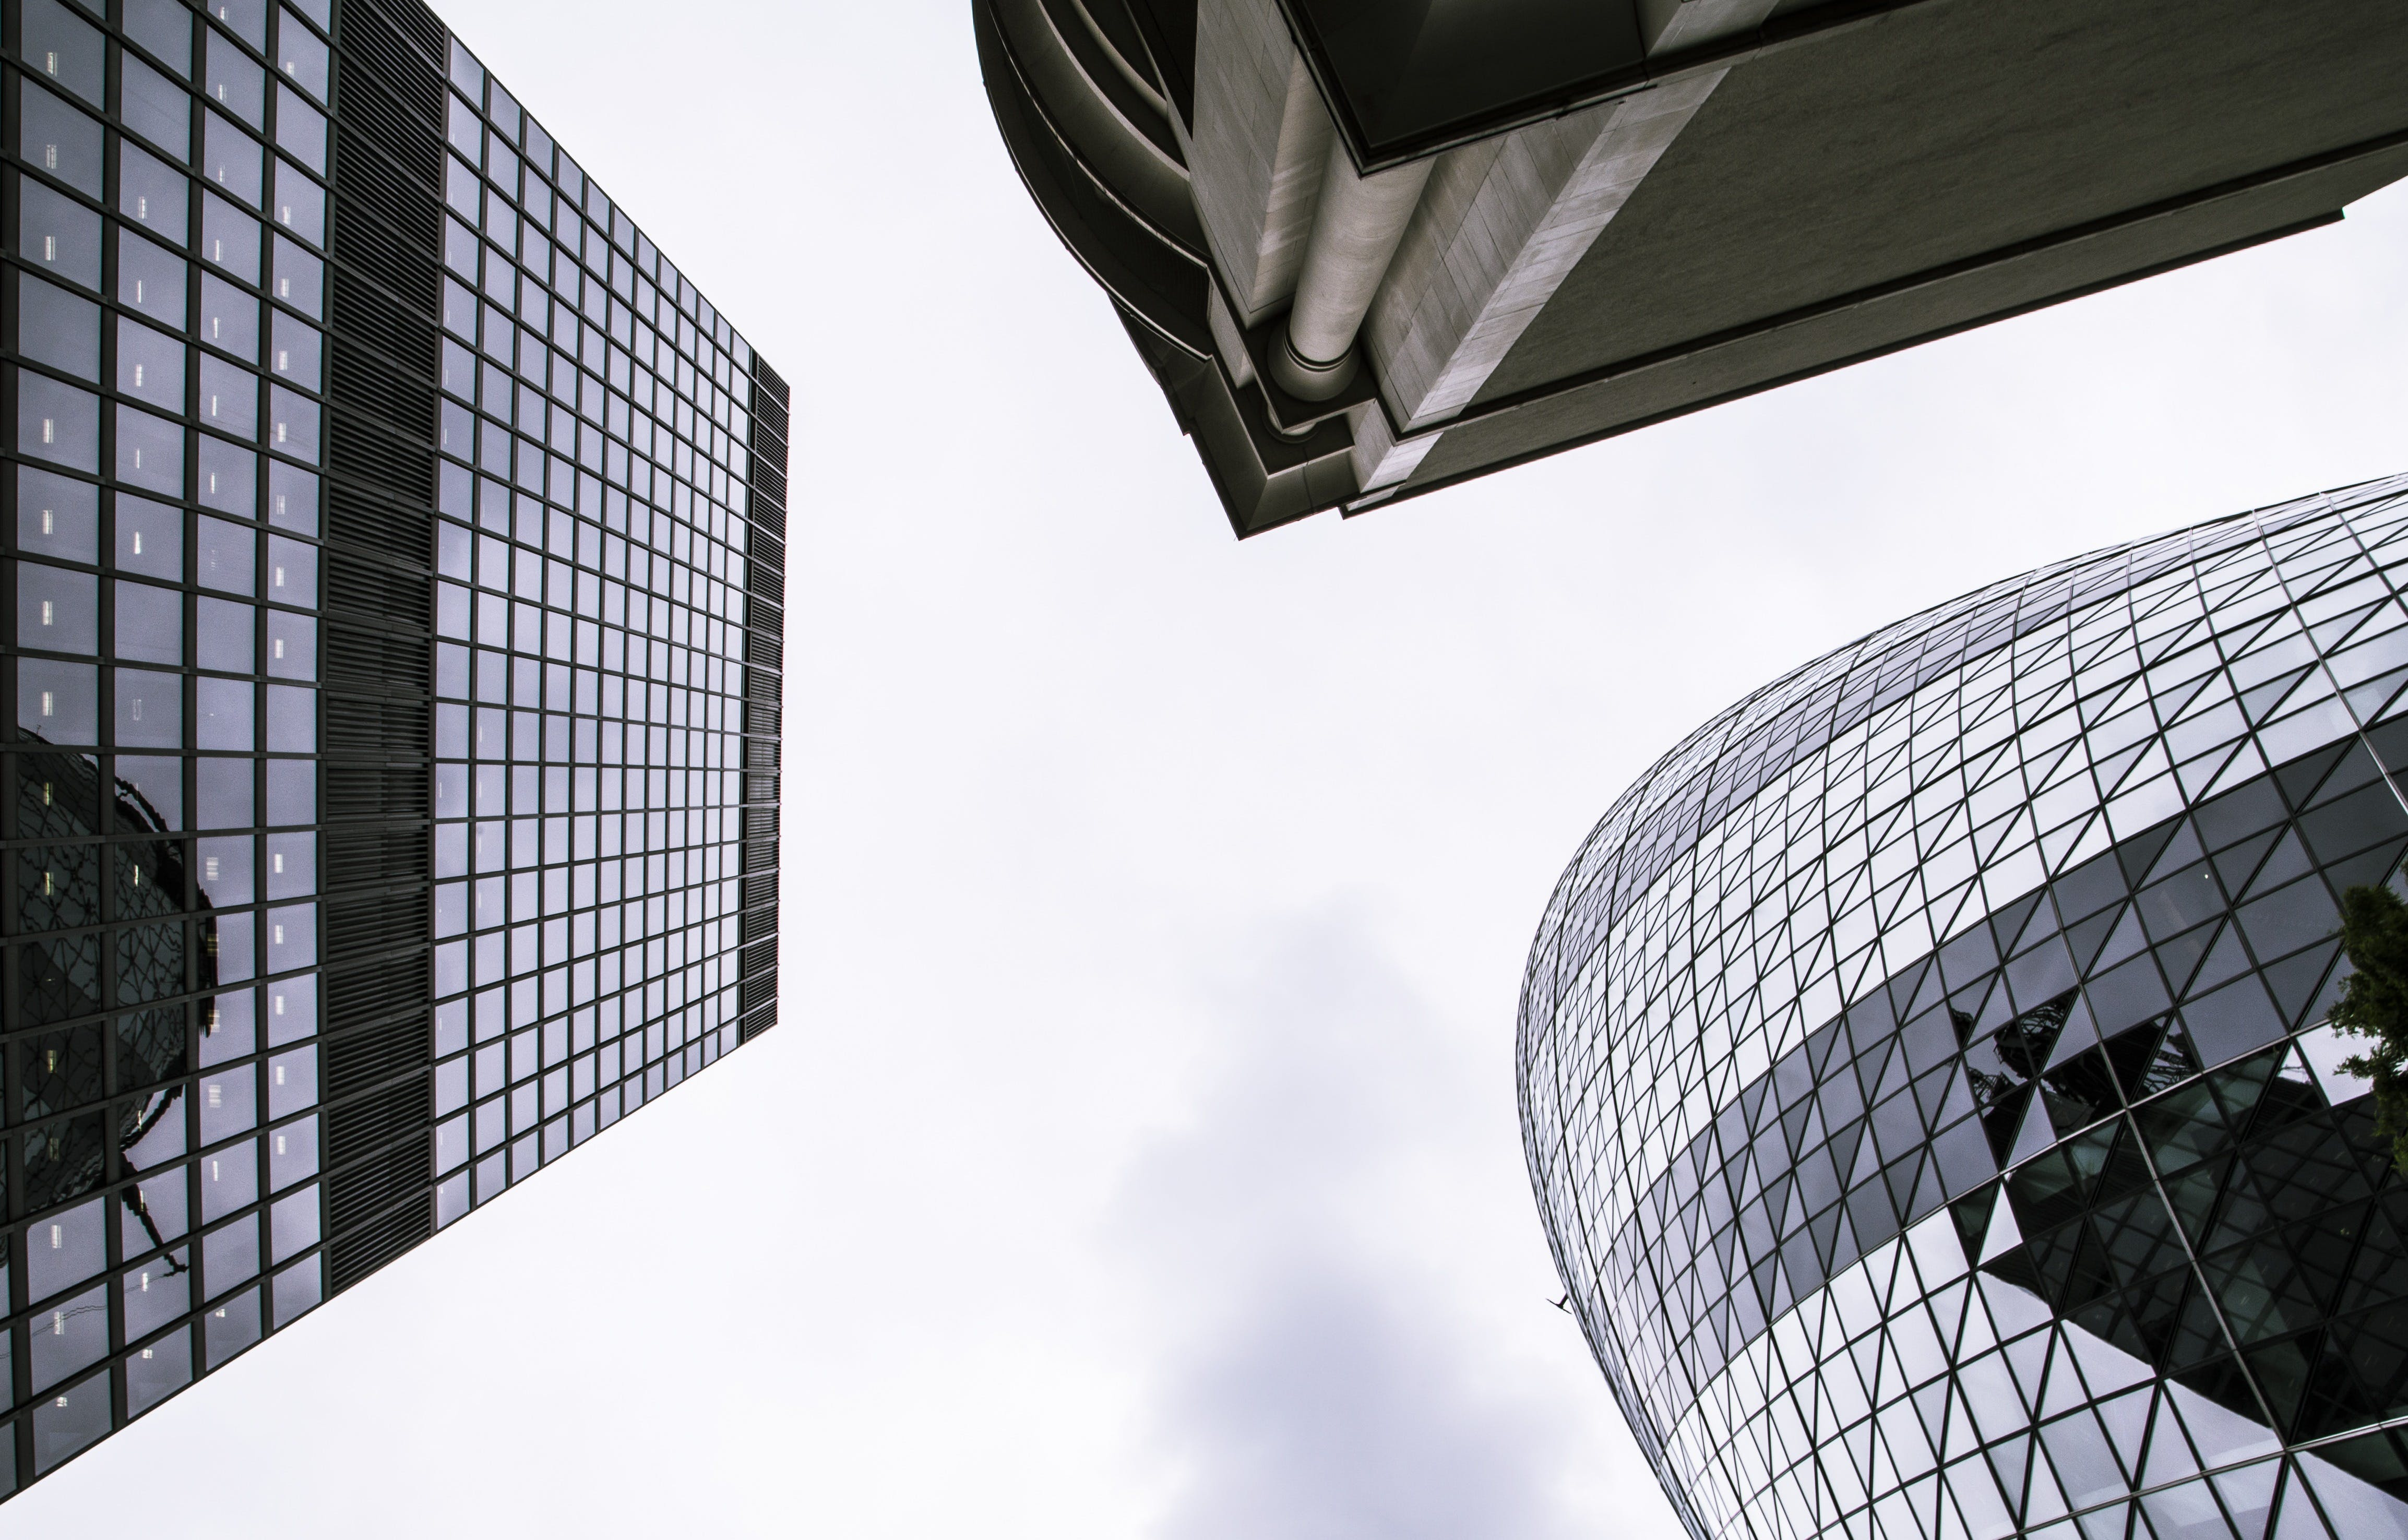 Worm's Eye View of Mirror Covered Concrete Buildings Under Gray Cloudy Skies